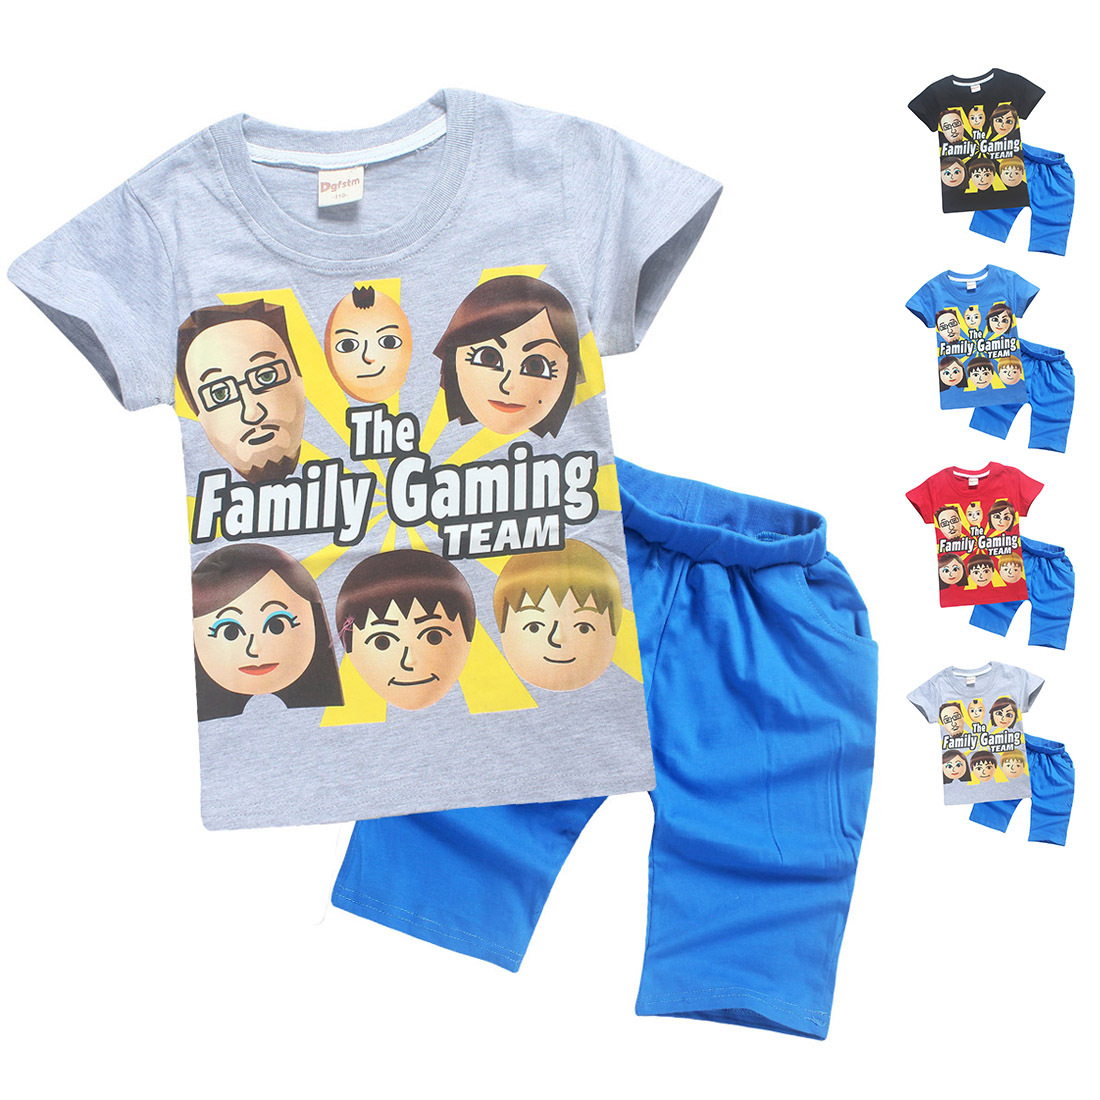 100% Cotton FGTeeV Faces for Kids Clothes Summer T Shirts for Boys Girls Tops Youth Youtube Family Gaming Duddy Child T-shirt